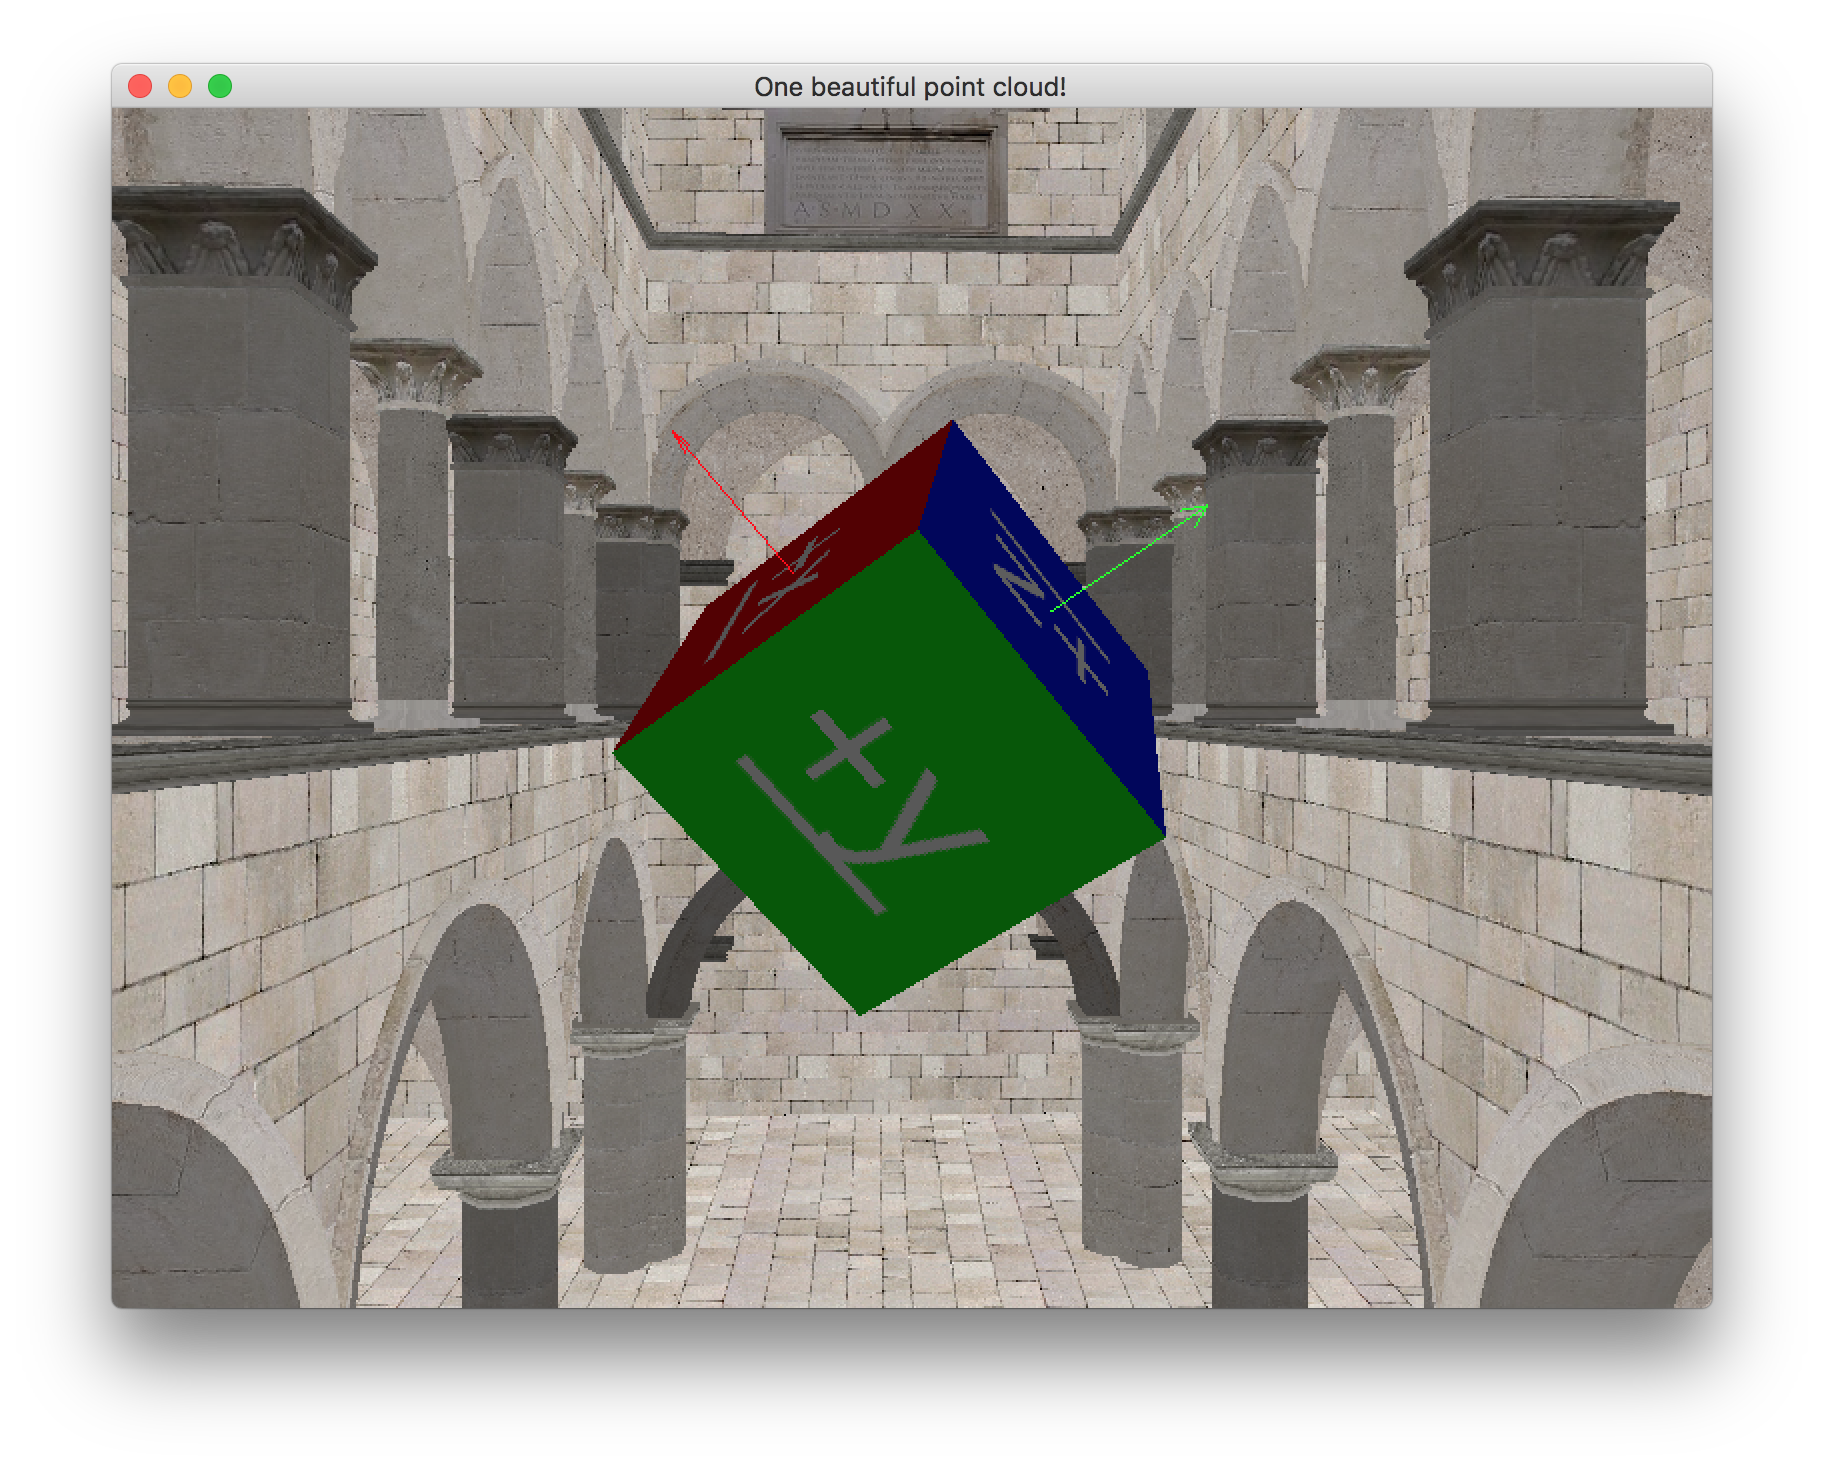 A rotated cube. Red and green arrows can be seen emerging from two sides; presumably a matching blue arrow protrudes from the side facing away from the camera.